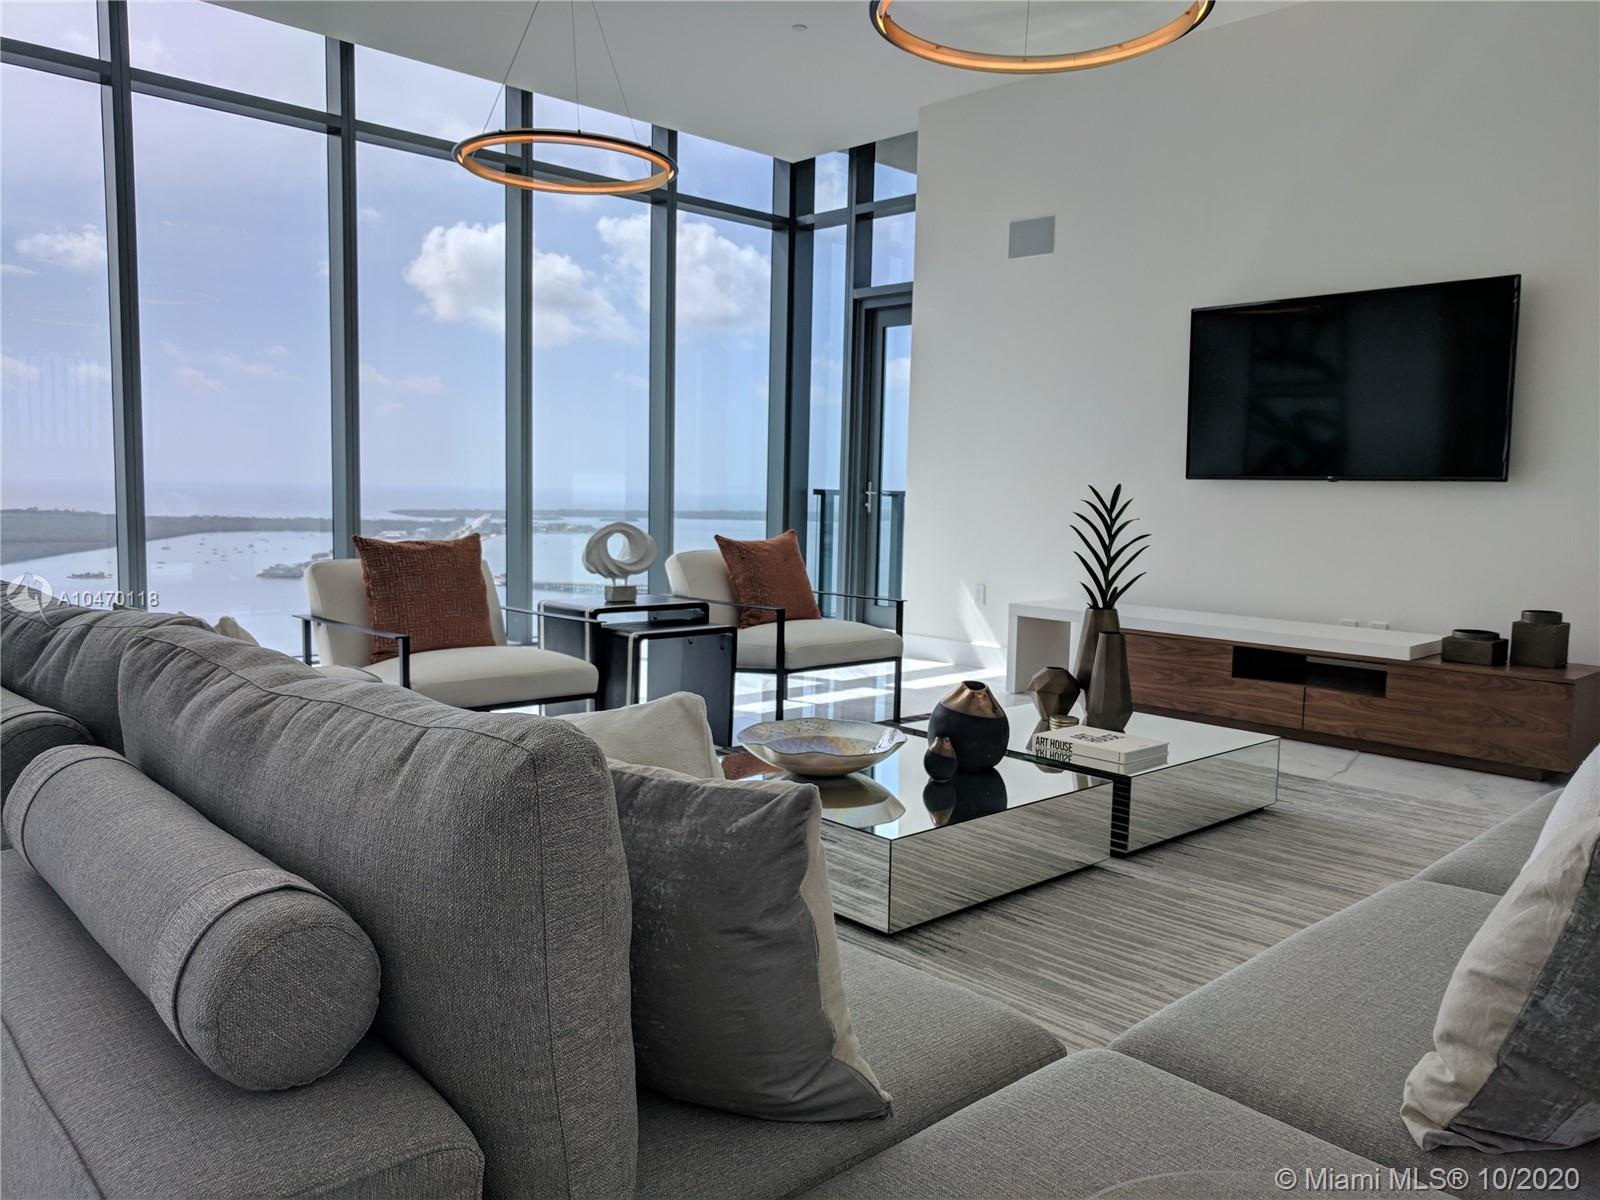 "Stunning Lower Penthouse residence with incredible unobstructed views of Biscayne Bay, Miami skyline, and the Ocean - East, West, North & South exposure.  Featuring a spectacular Master Suite, with built-in Italian closets & extra tall floor to ceiling windows.  Marble flooring throughout, 7-foot Italian entry doors, and Poliform kitchen cabinets.  Echo Brickell is a state of the art ""Smart"" building, designed by Carlos Ott + Yoo, 4000 sq ft fitness center, Infinity edge pools. Enjoy complimentary daily breakfast poolside & in-house chauffeur services.  Best Penthouse opportunity in all of Downtown Miami."